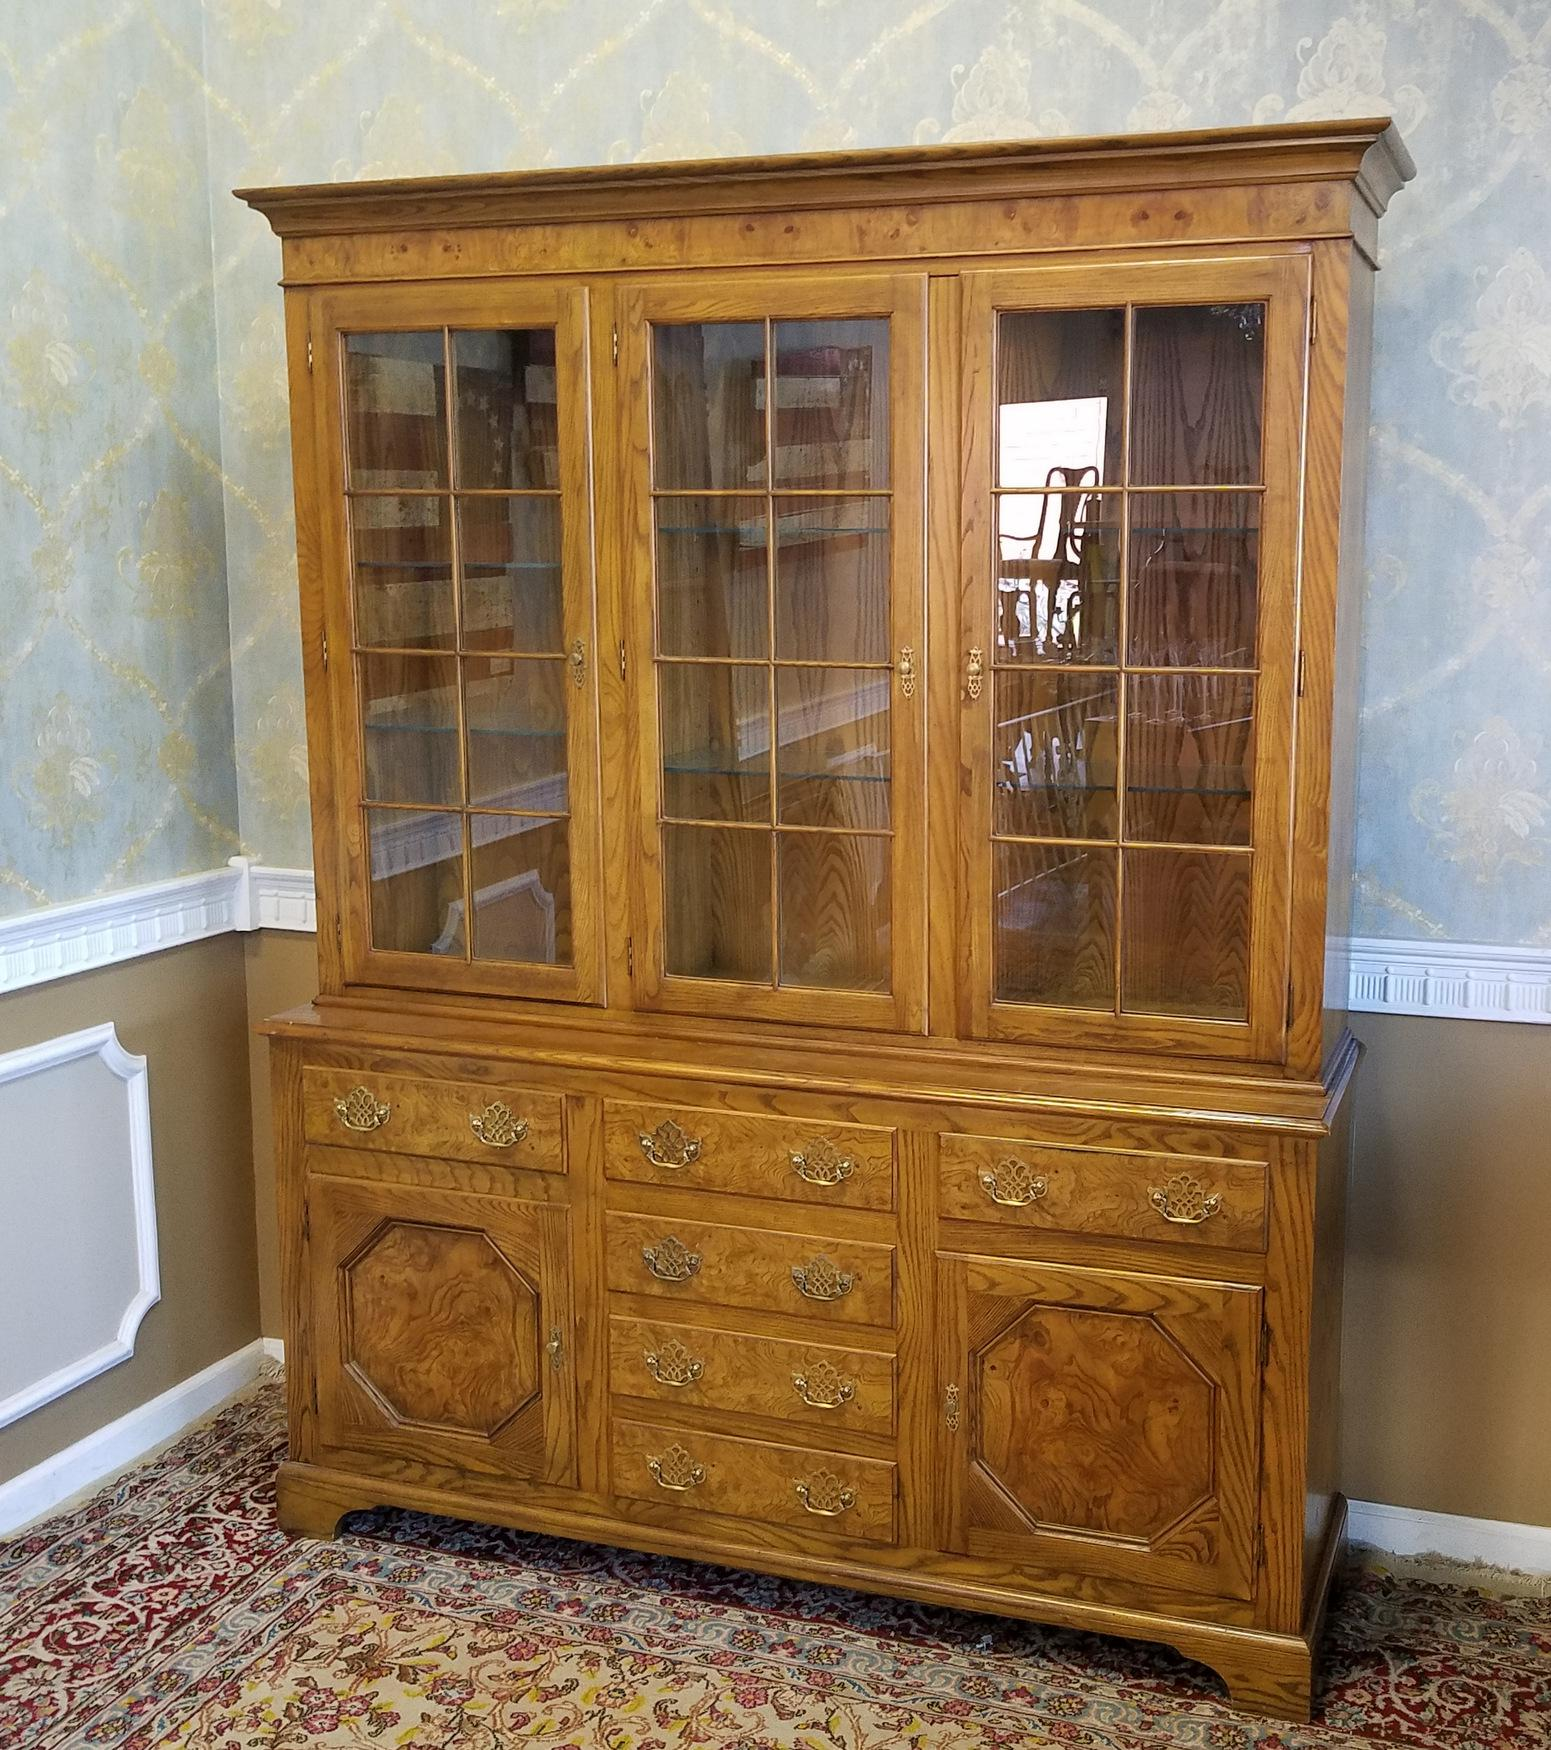 Queen Anne Baker Furniture Queen Anne Style Elm U0026 Oak China Cabinet For  Sale   Image